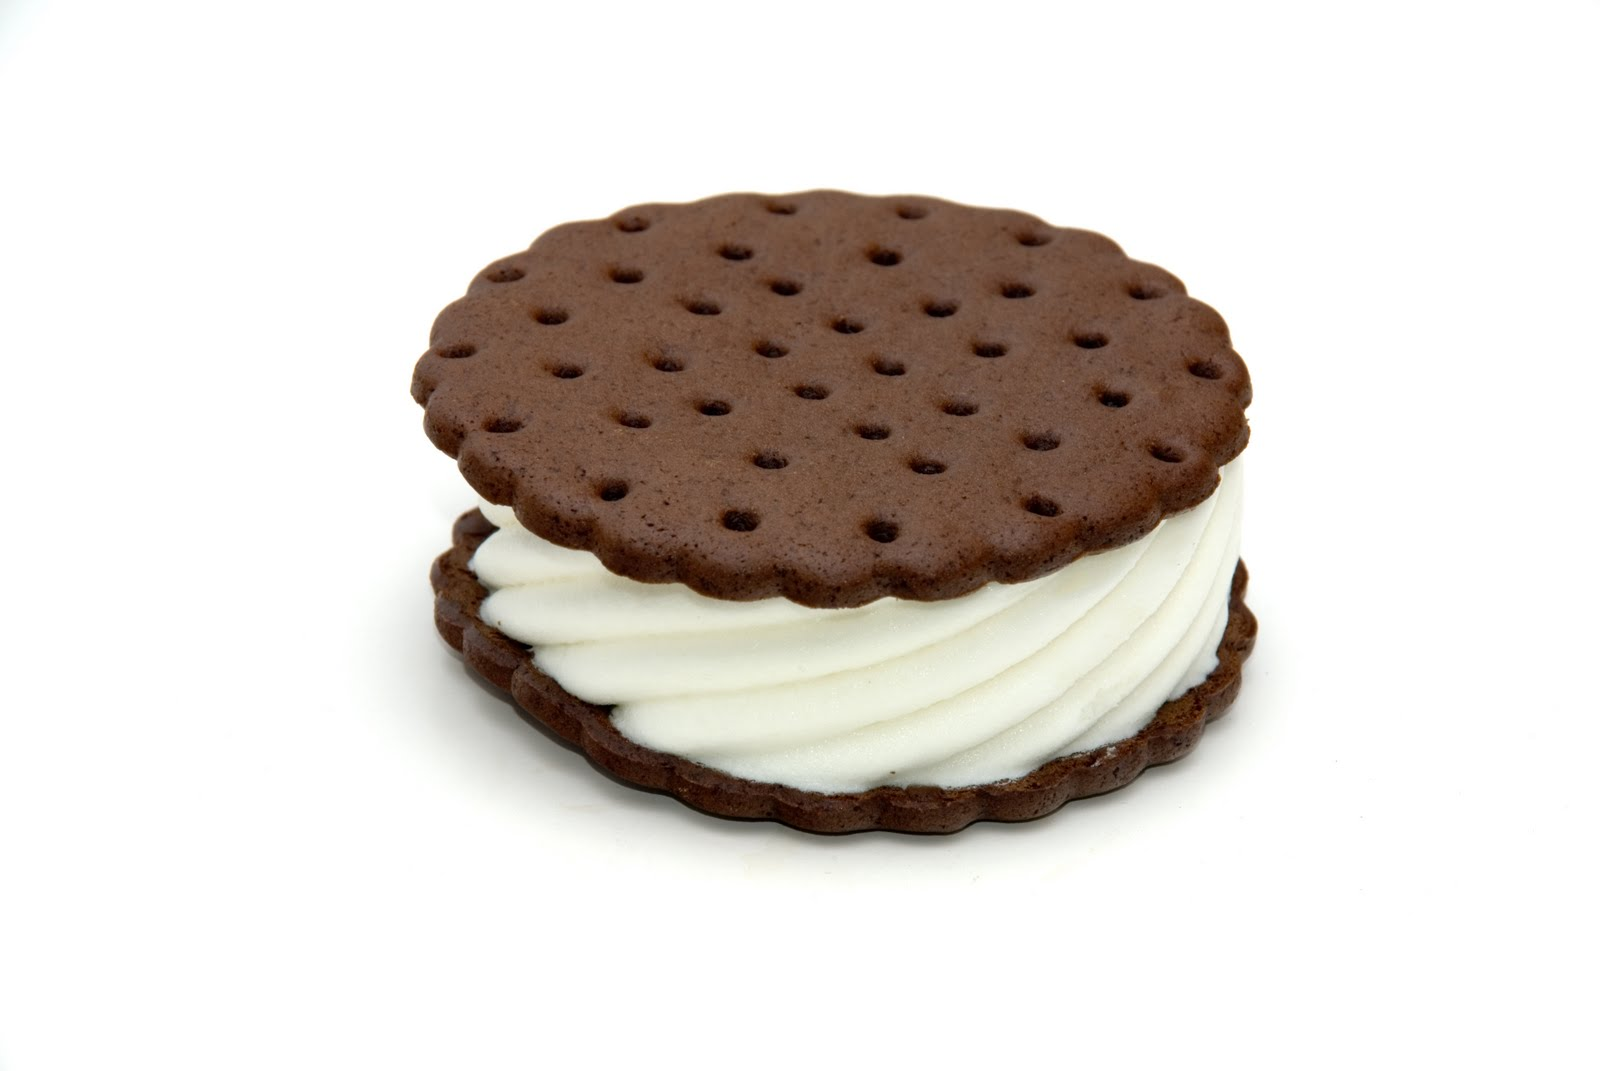 August 2 is National Ice Cream Sandwich Day. The Los Angeles Times ...